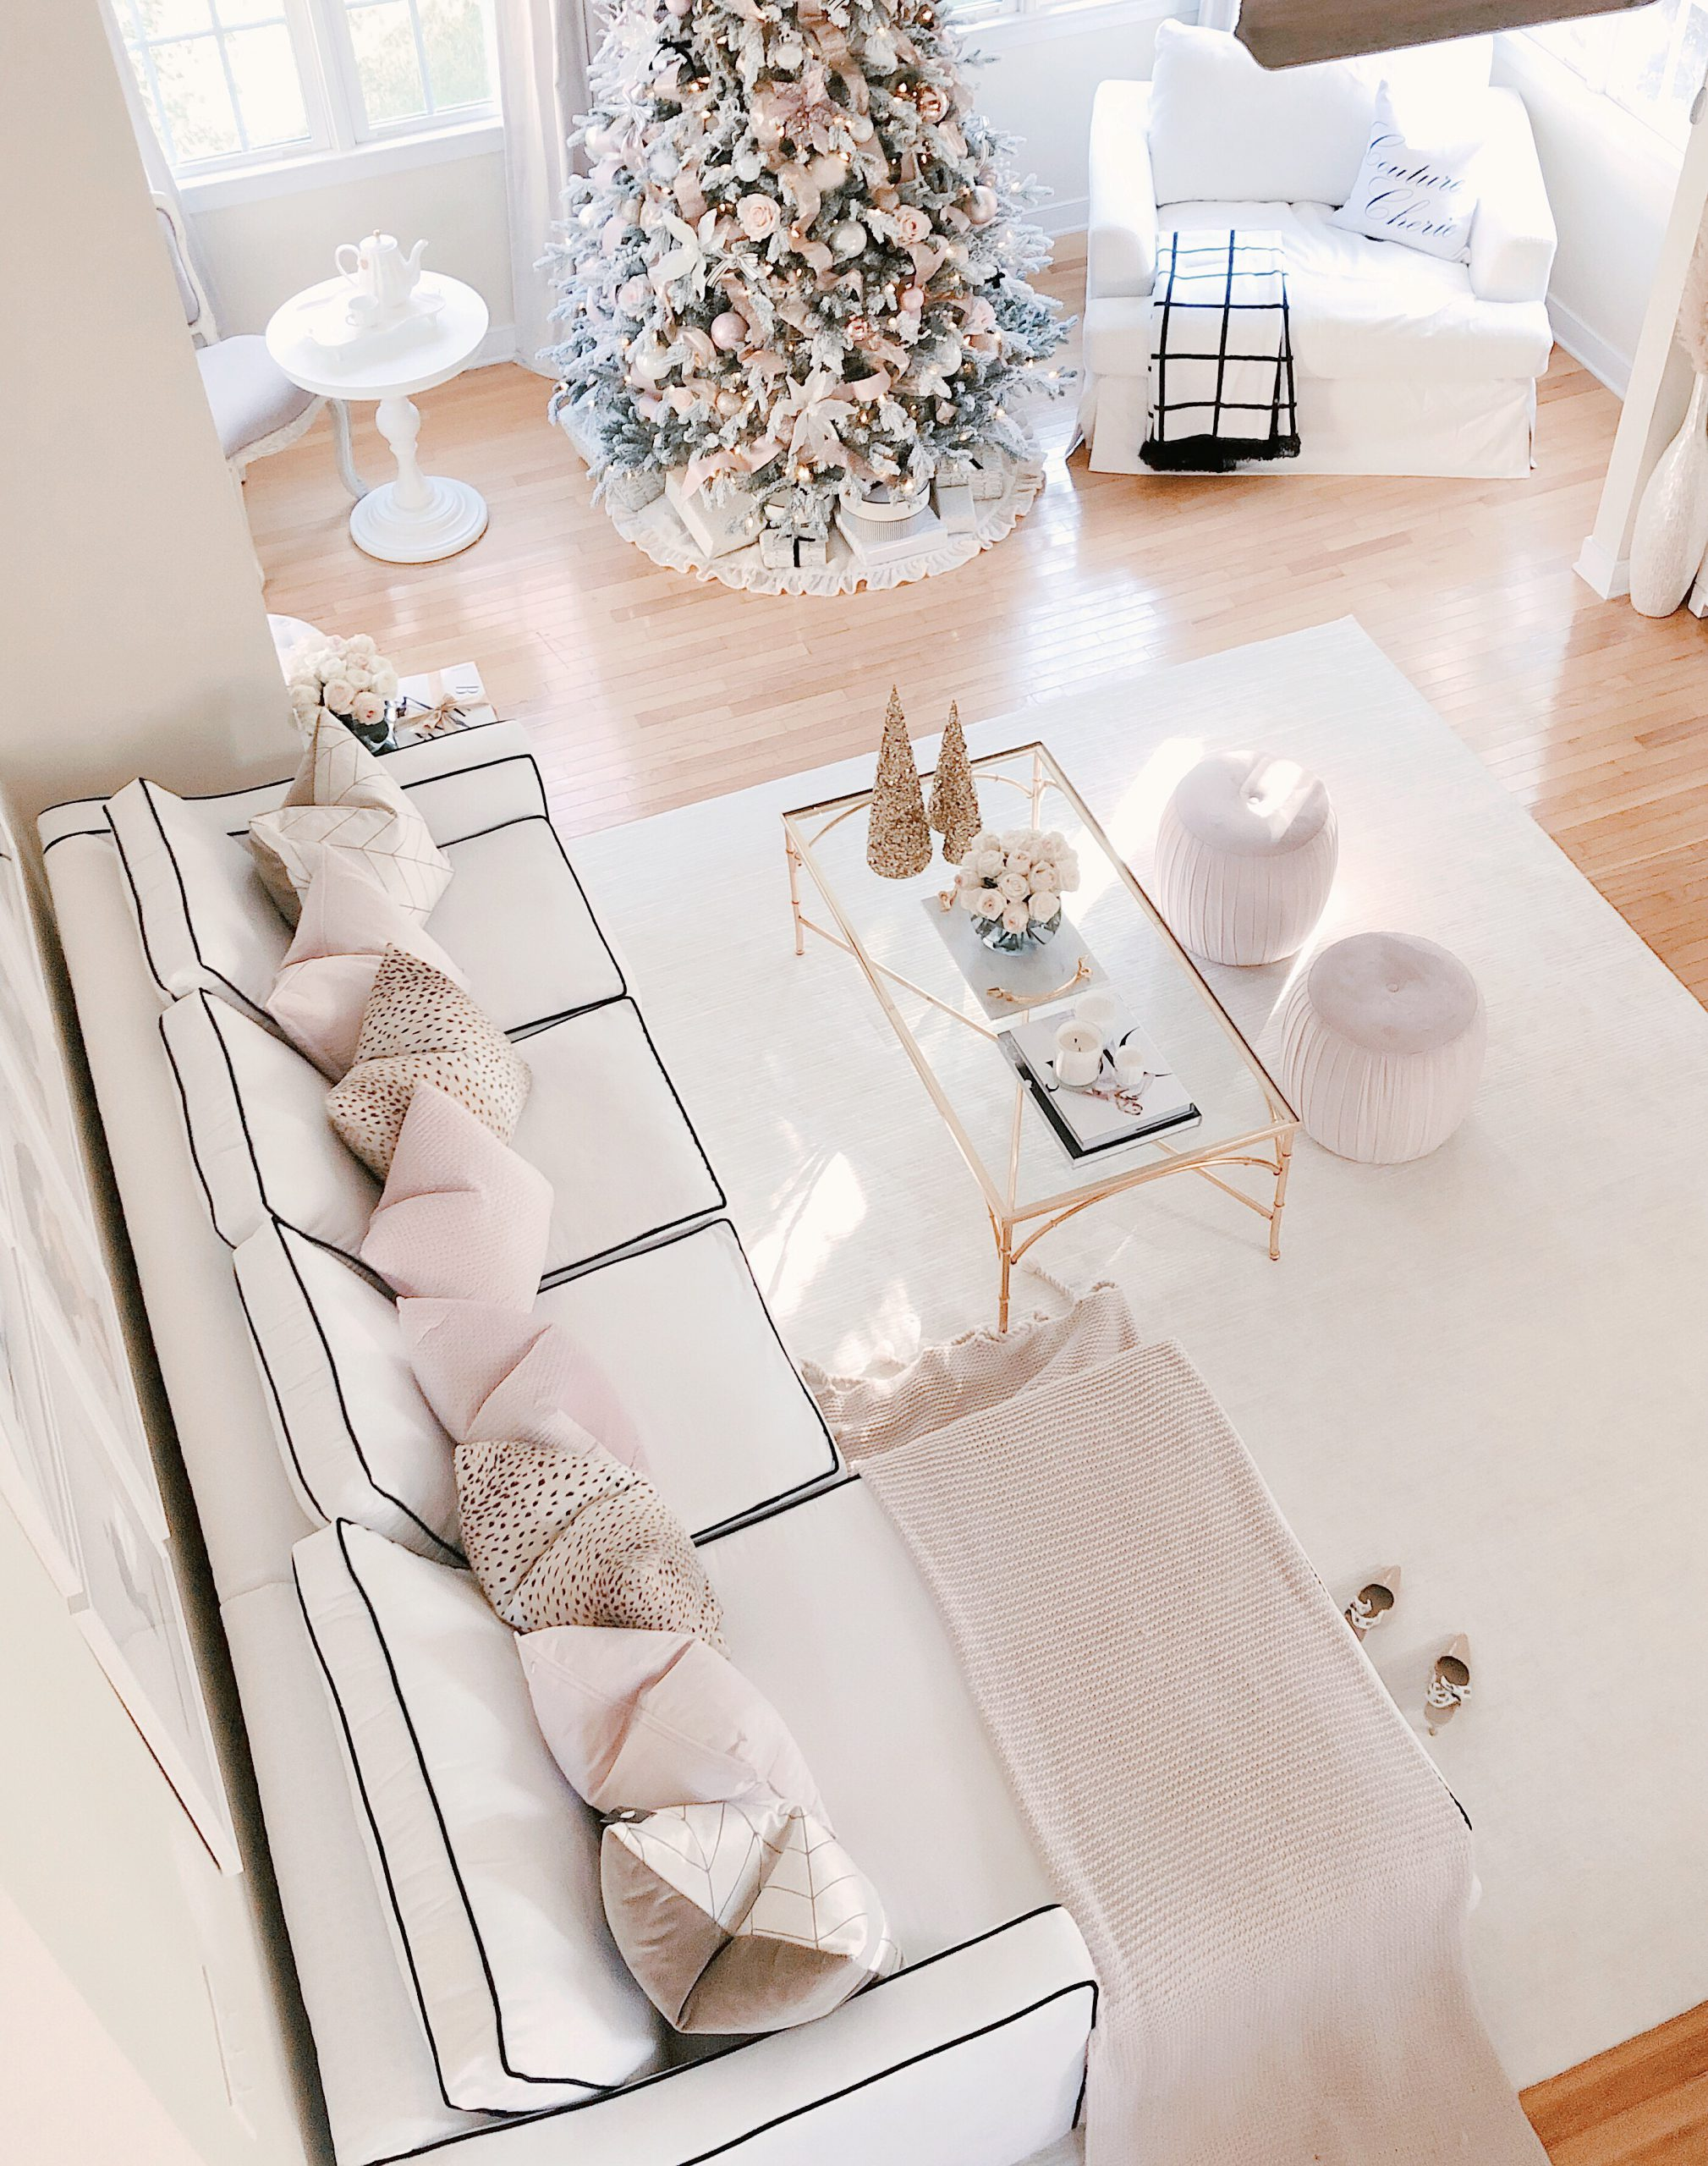 Chanel & Glam Inspired living room makeover